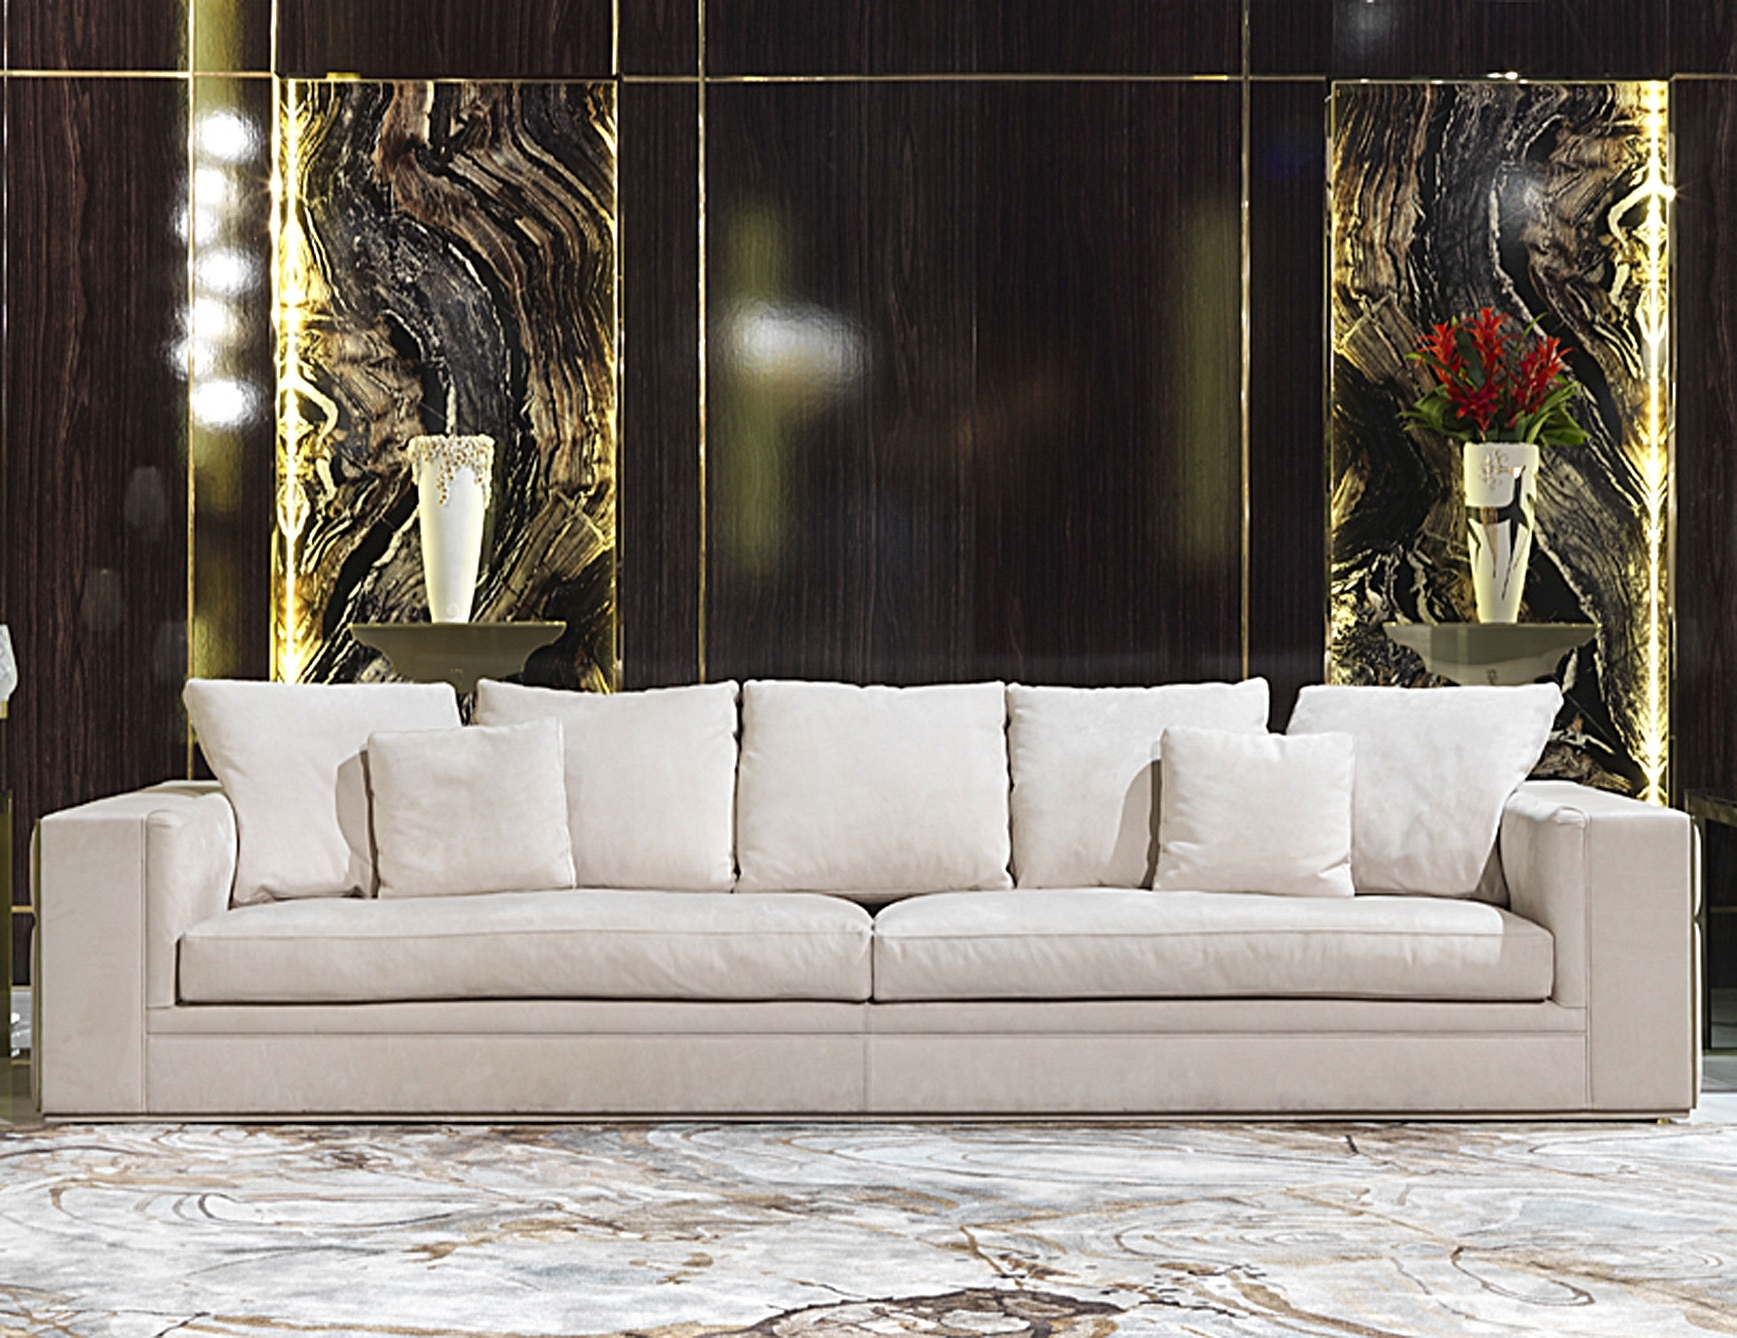 Well Liked Nella Vetrina Visionnaire Ipe Cavalli Babylon Luxury Italian Sofa Within Luxury Sofas (View 13 of 15)